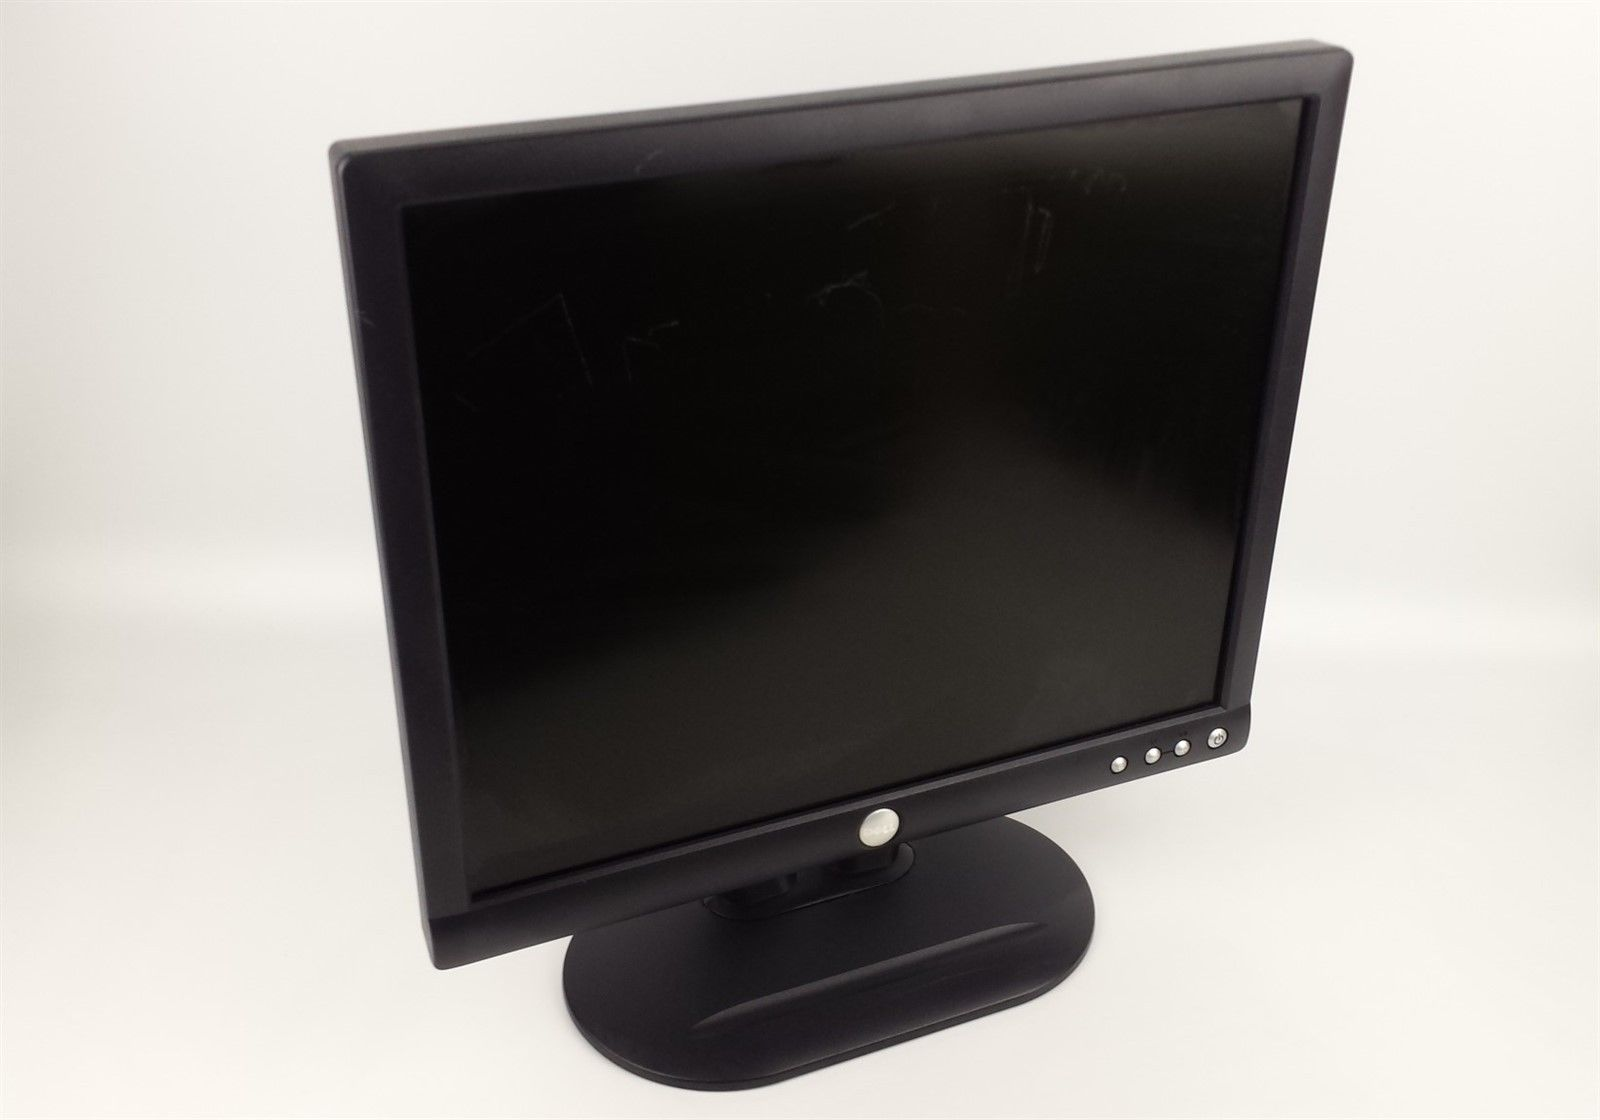 "Dell E Series E193FPc LCD Flat Panel Display Monitor 19"" G8432 w/ Power&VGA Cord"